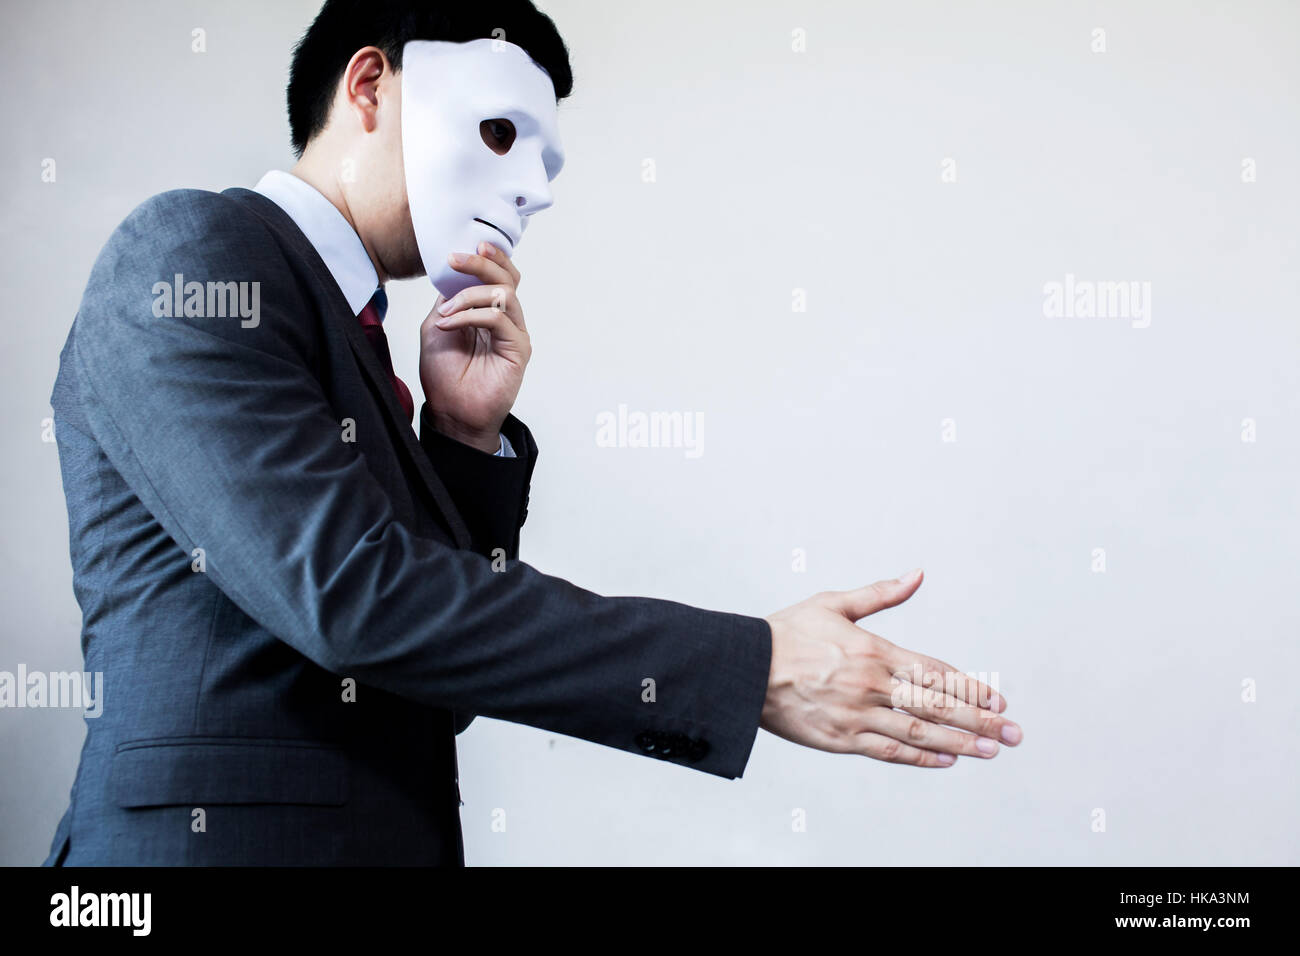 Business man giving dishonest handshake hiding in the mask - Business fraud and hypocrite agreement. - Stock Image